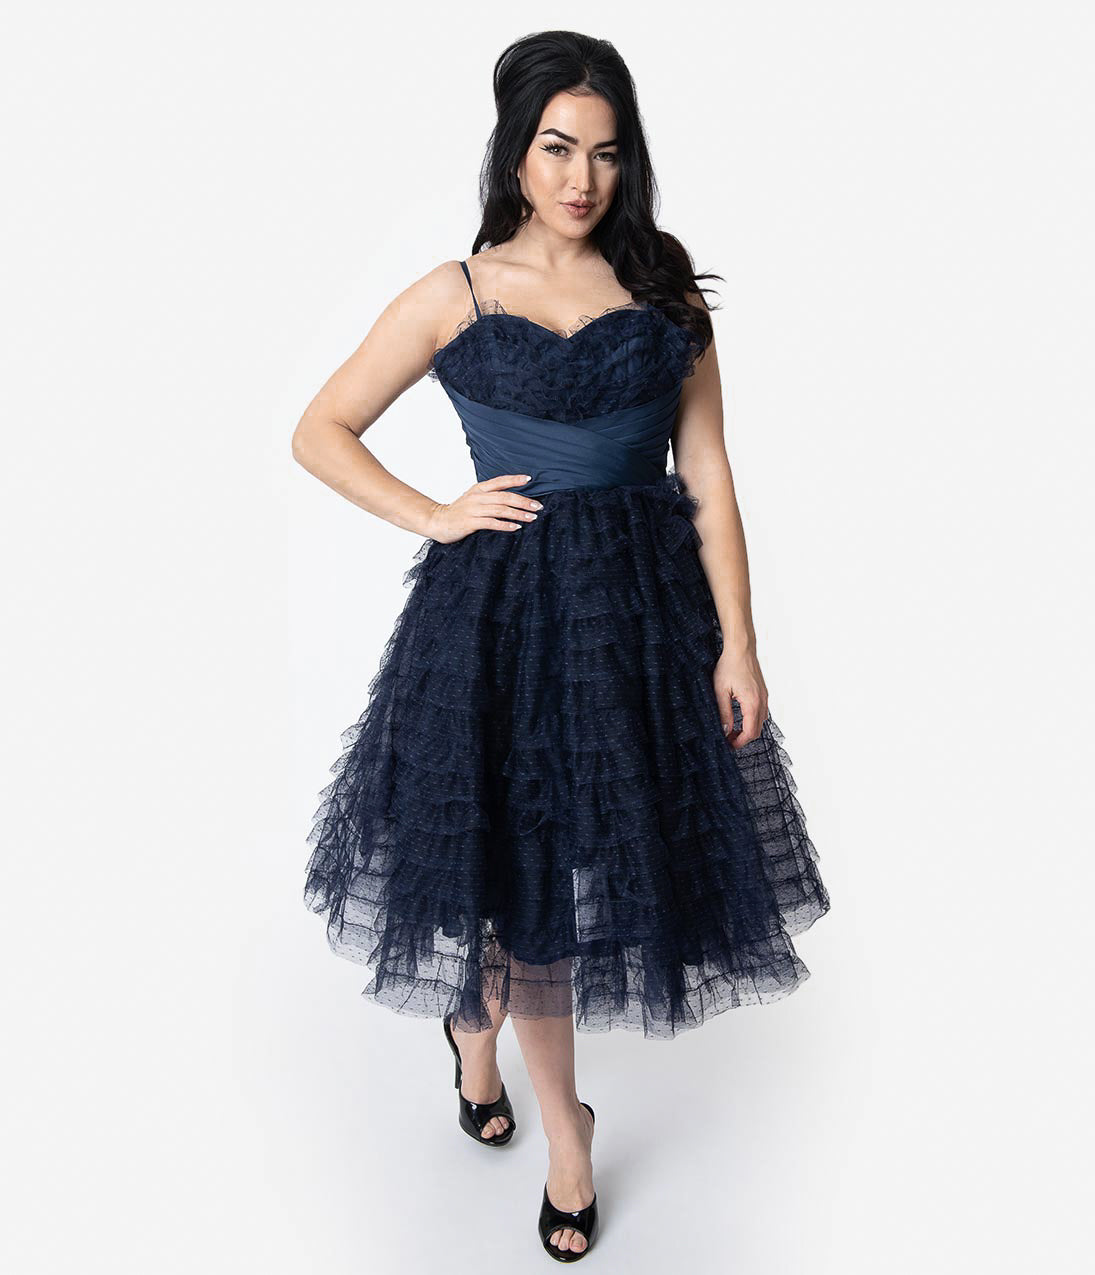 1950s Prom Dresses & Party Dresses Unique Vintage 1950S Navy Ruffled Tulle Sweetheart Cupcake Swing Dress $128.00 AT vintagedancer.com